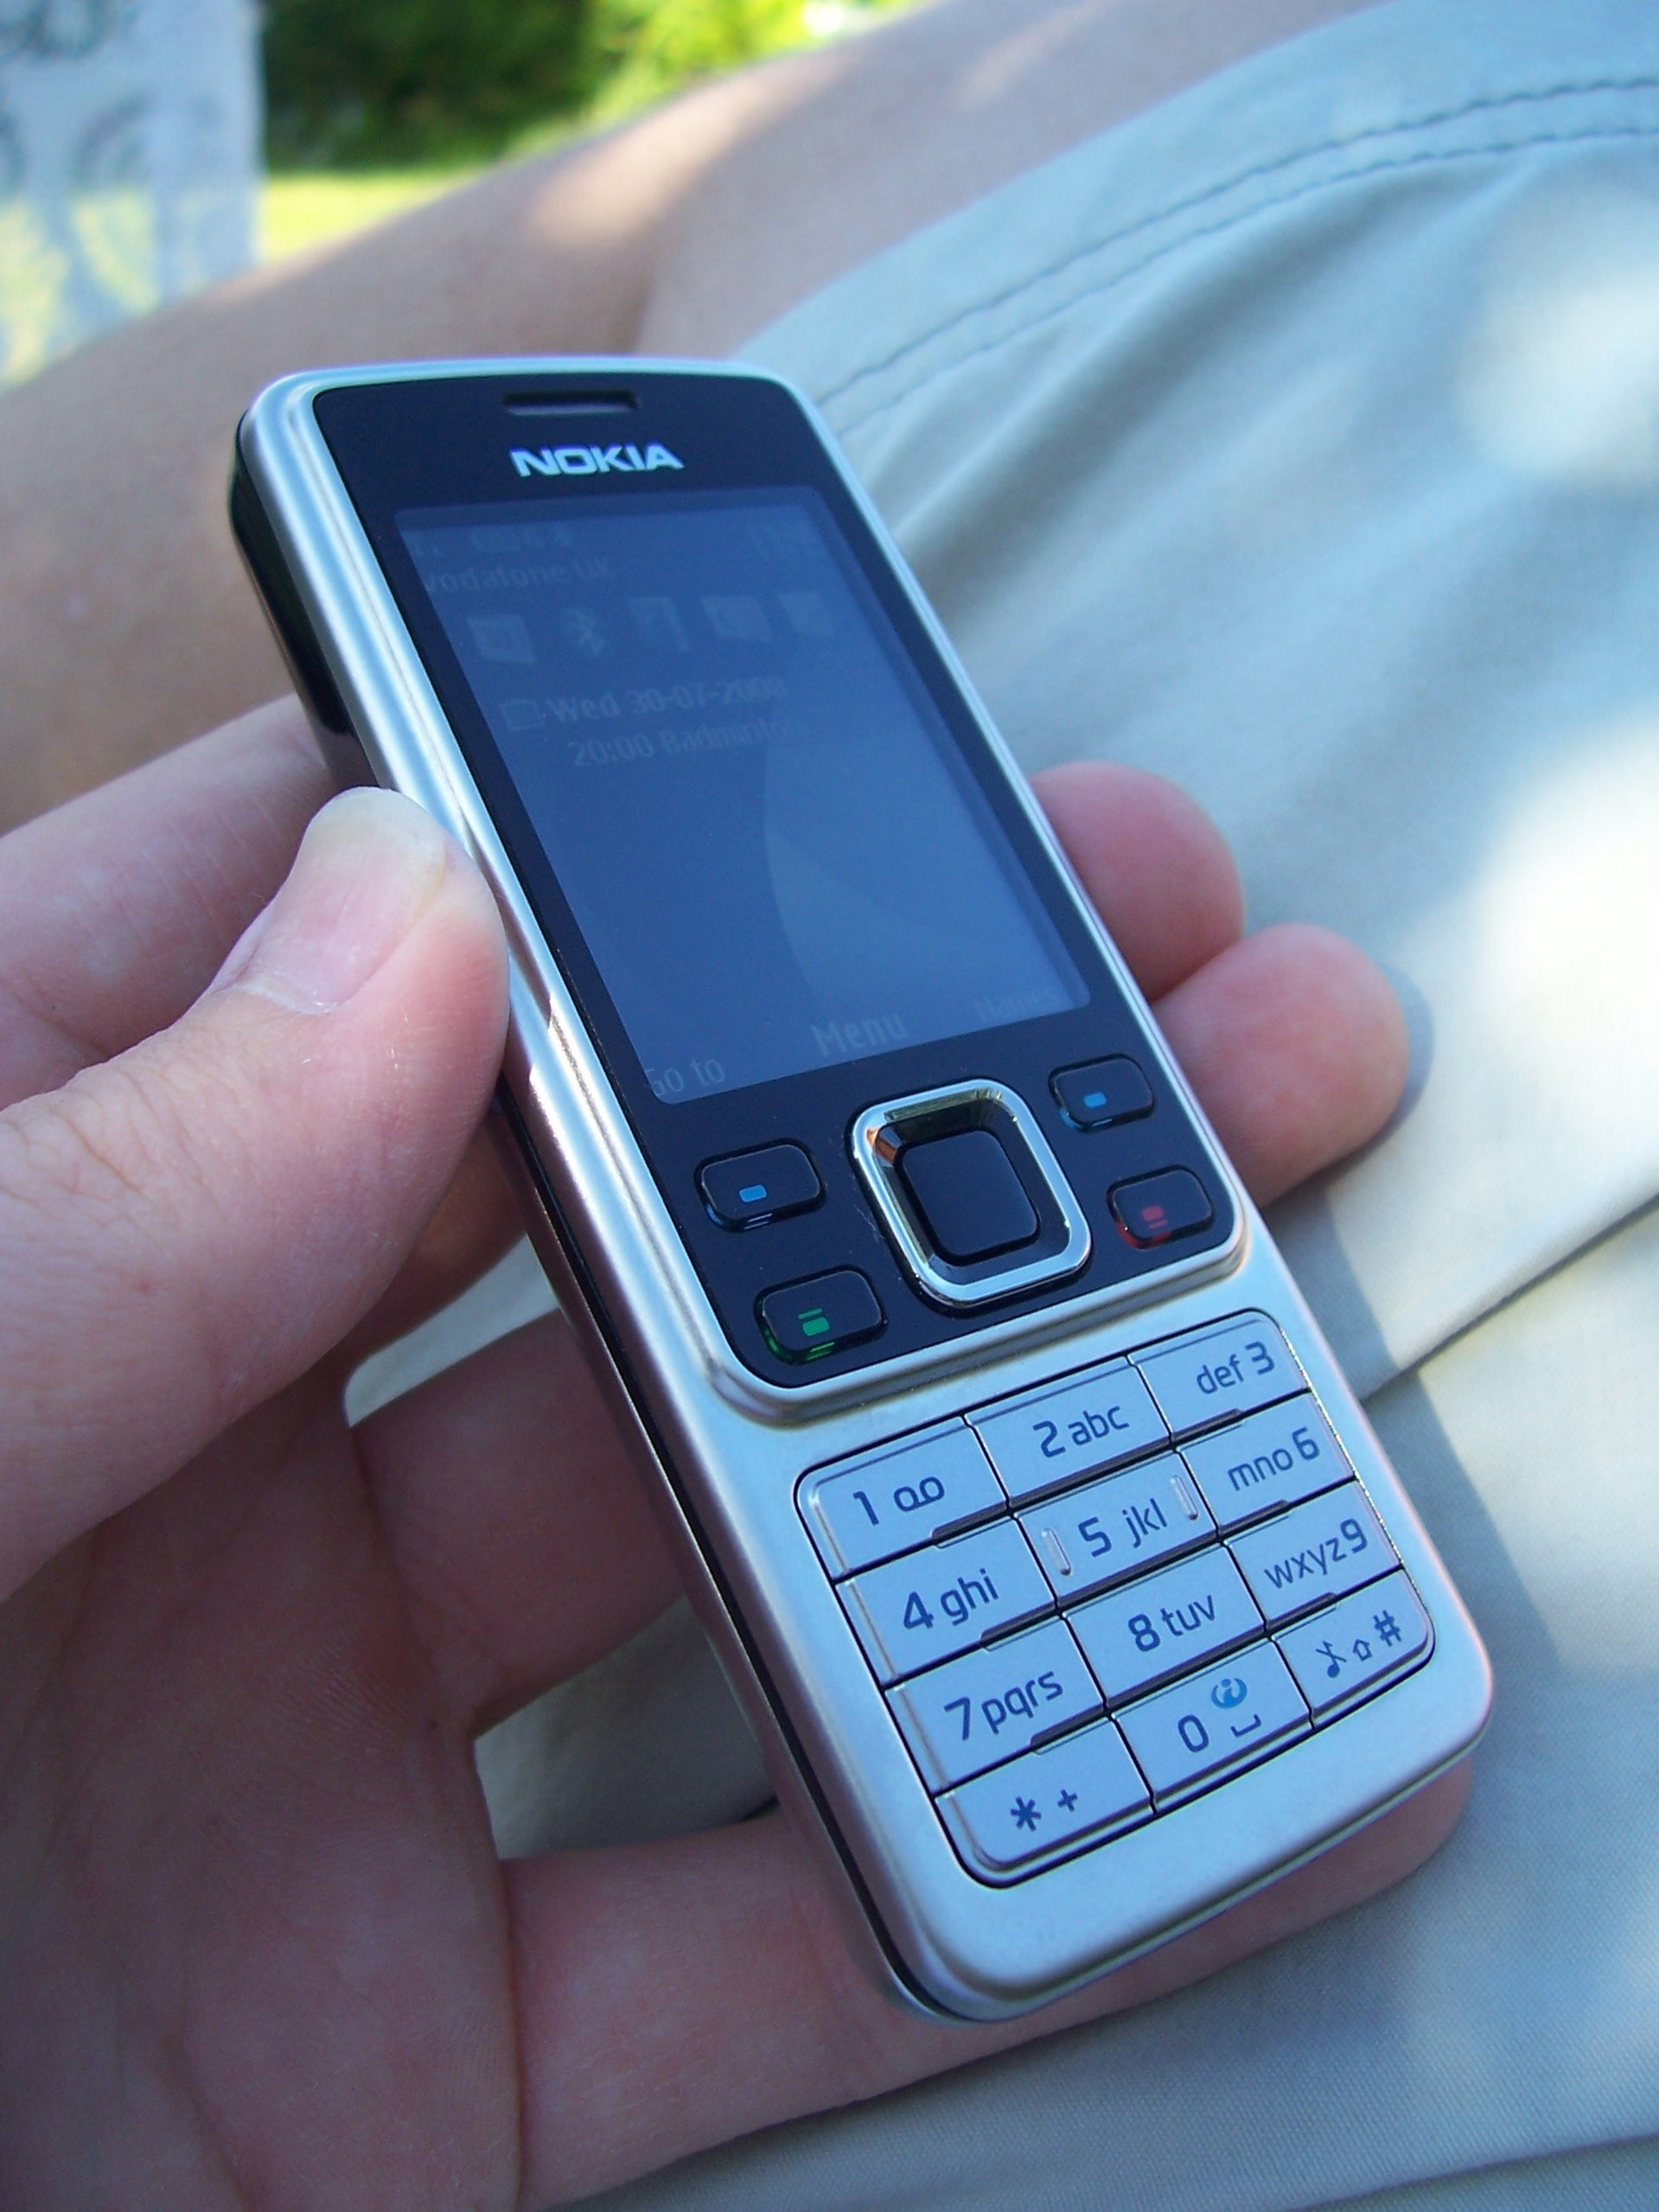 Nokia 6300 - The complete information and online sale with